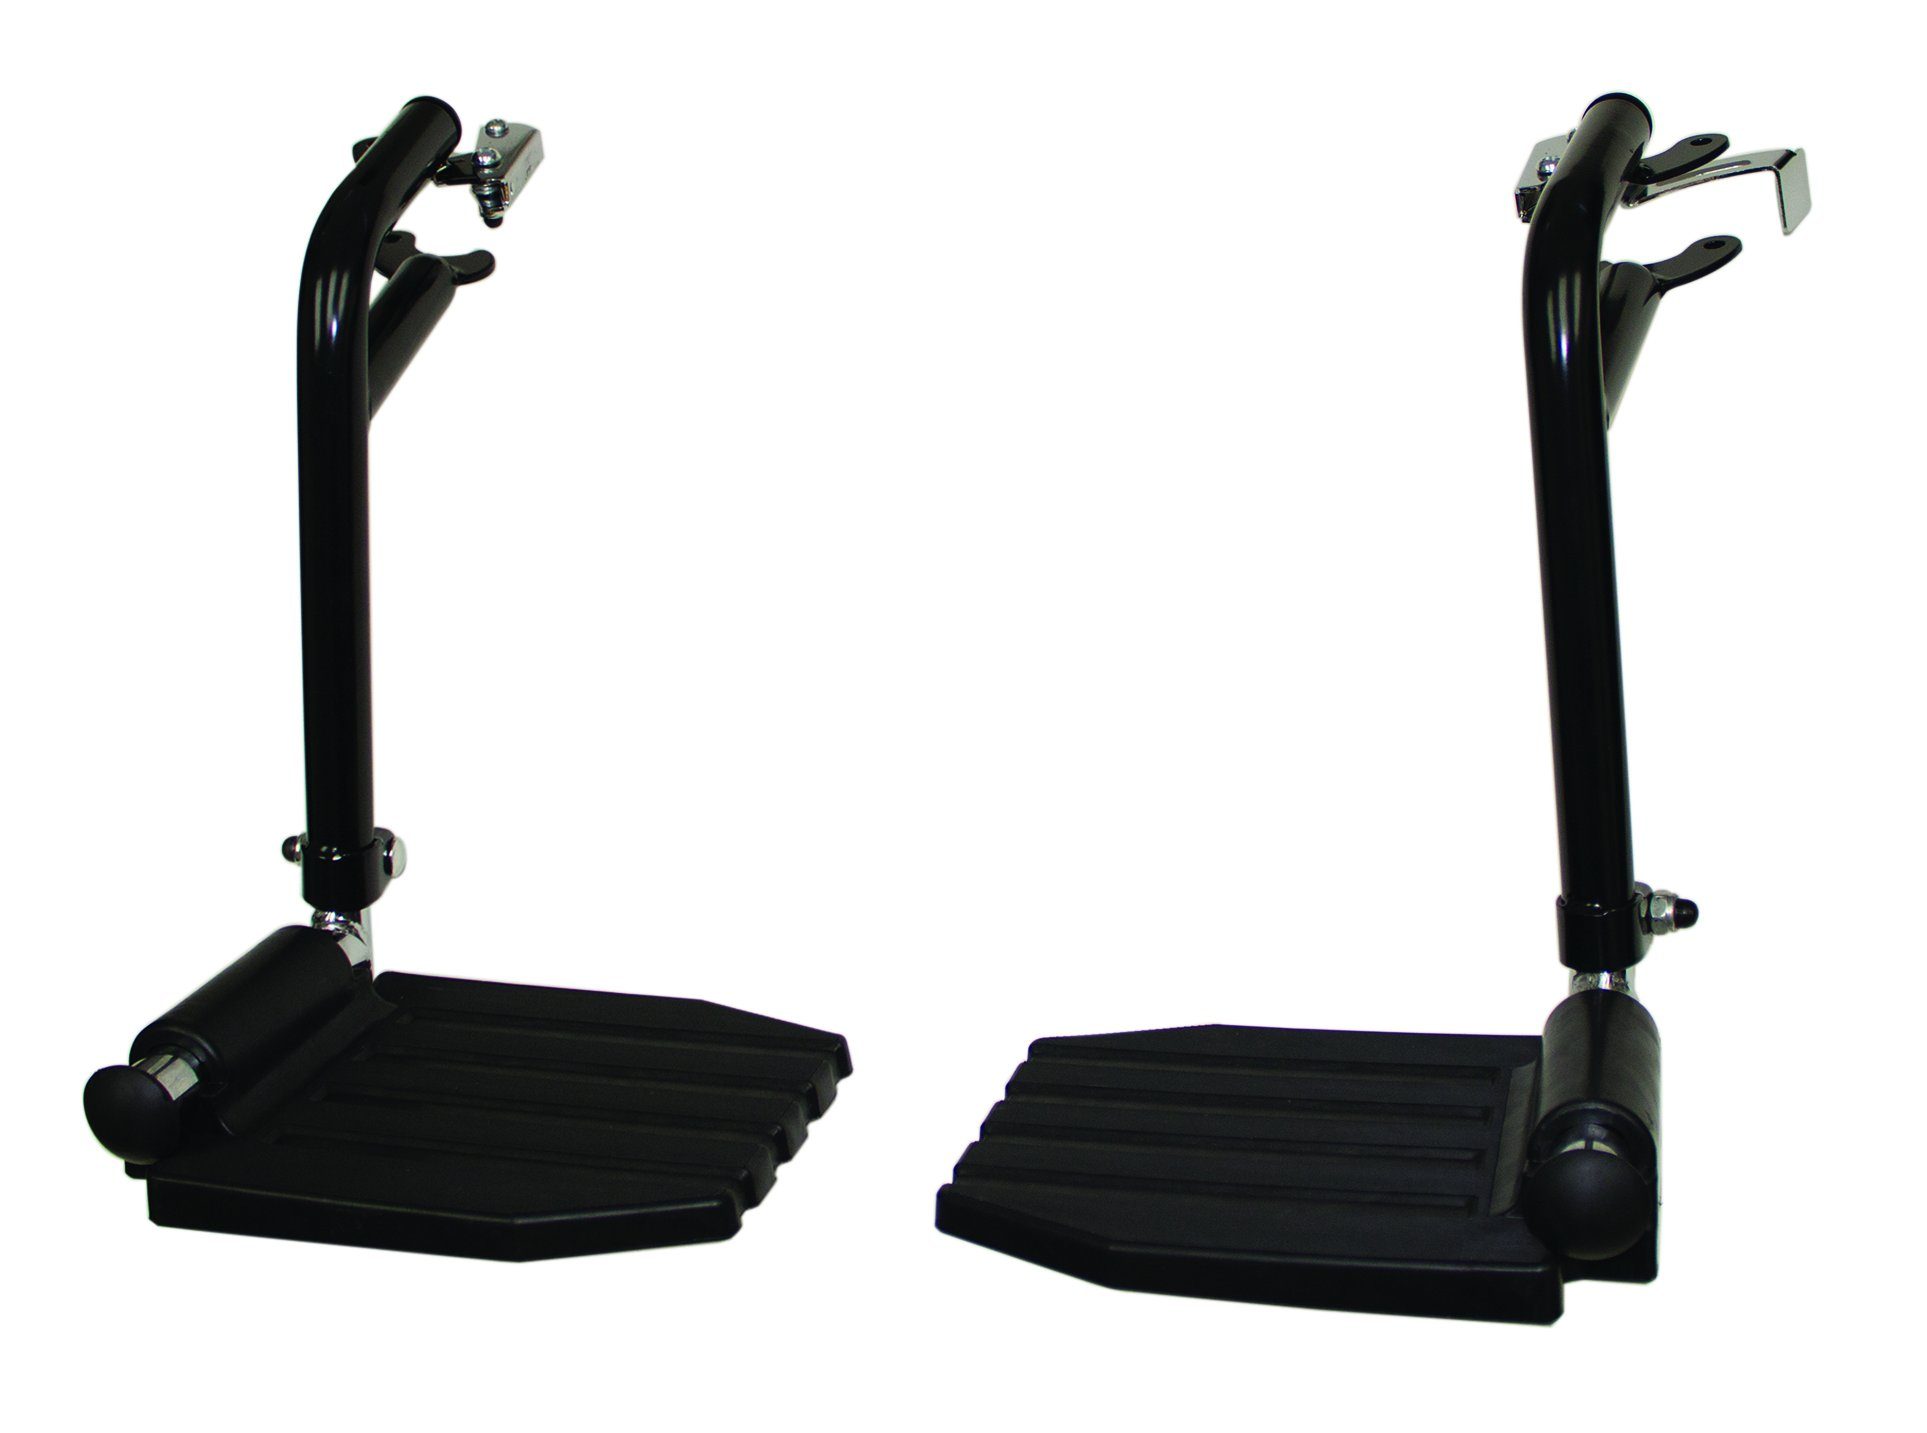 FRB412 - (1 Pair) Top Latch Black Footrest, Hemi Pin Spacing, Plastic Footrest